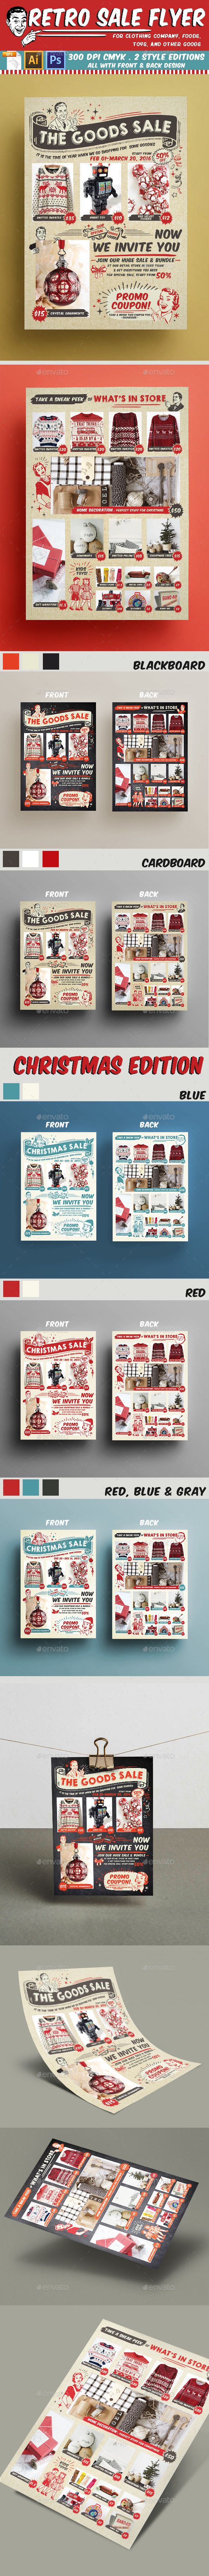 Retro Sale Flyer - Flyers Print Templates